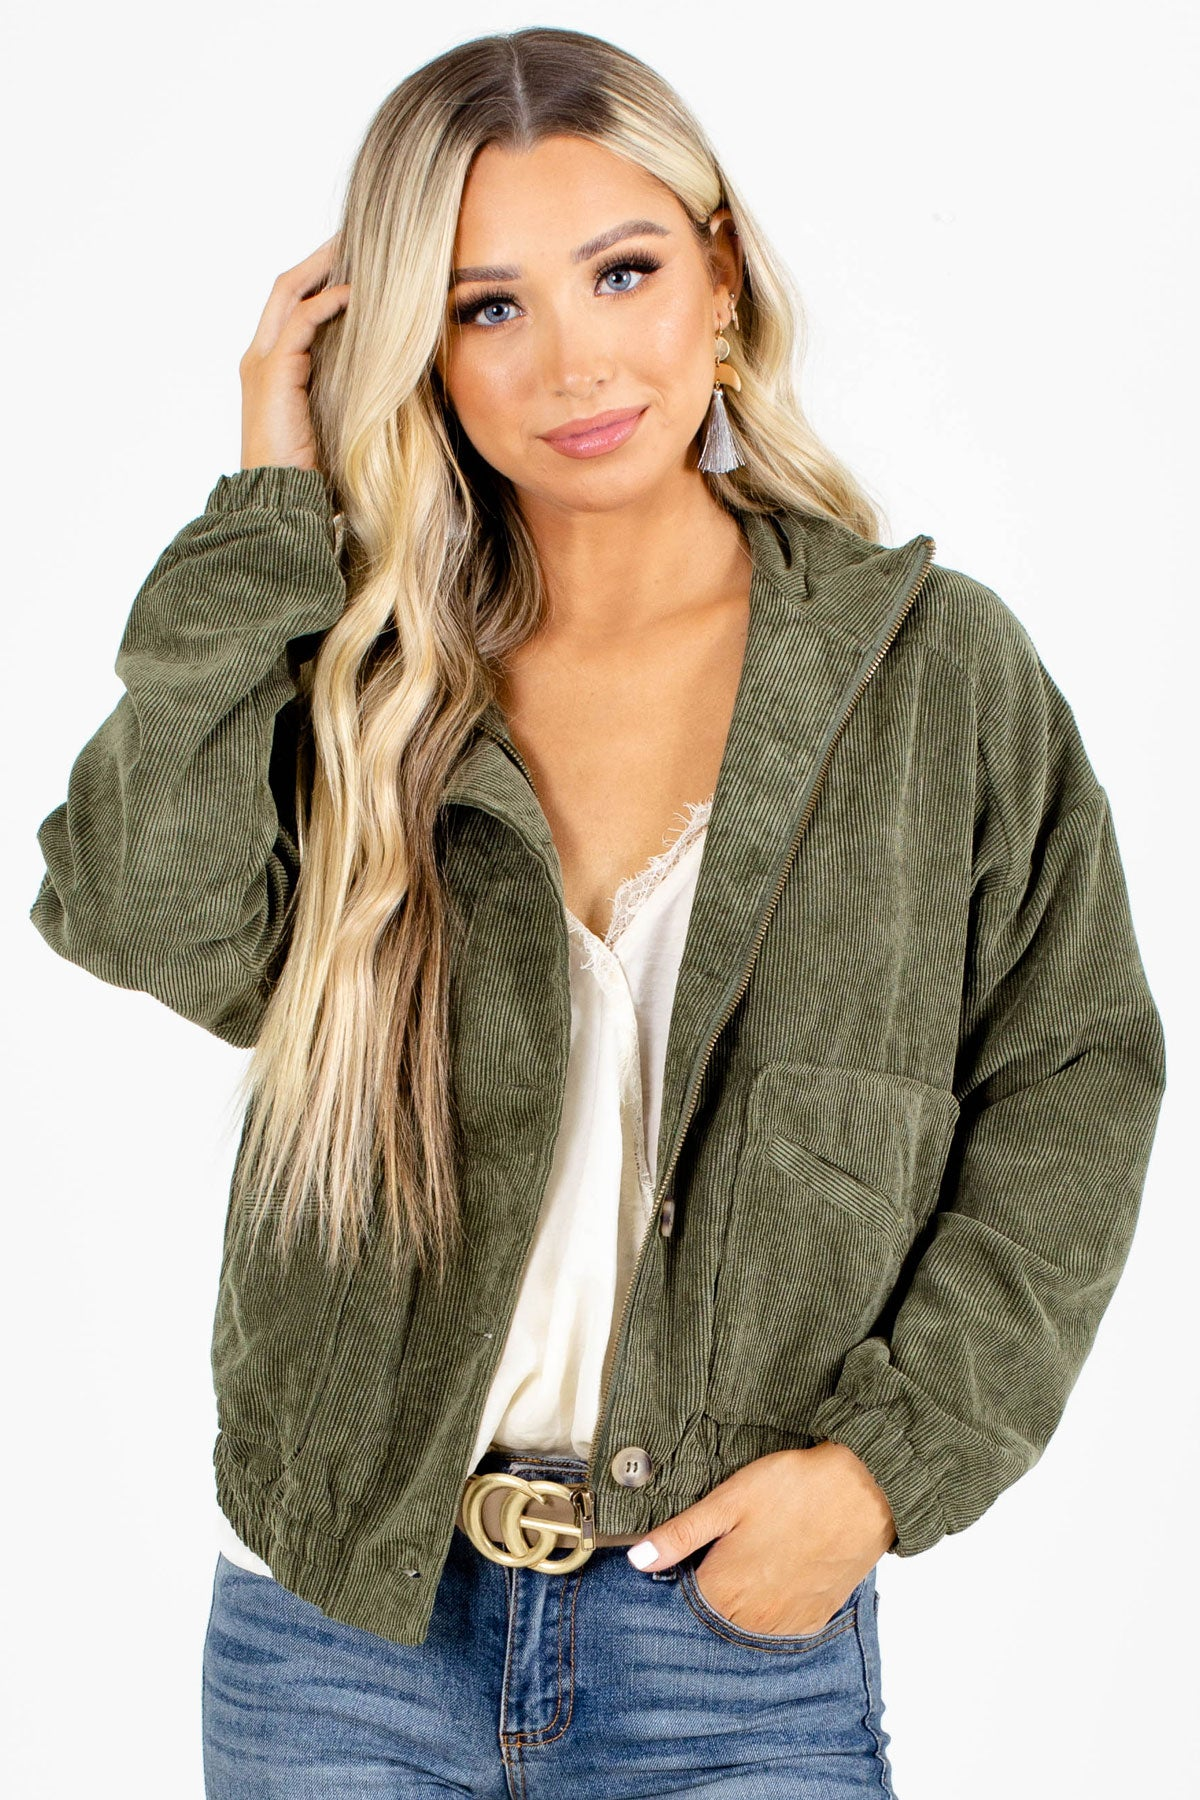 White Cute and Comfortable Boutique Jackets for Women